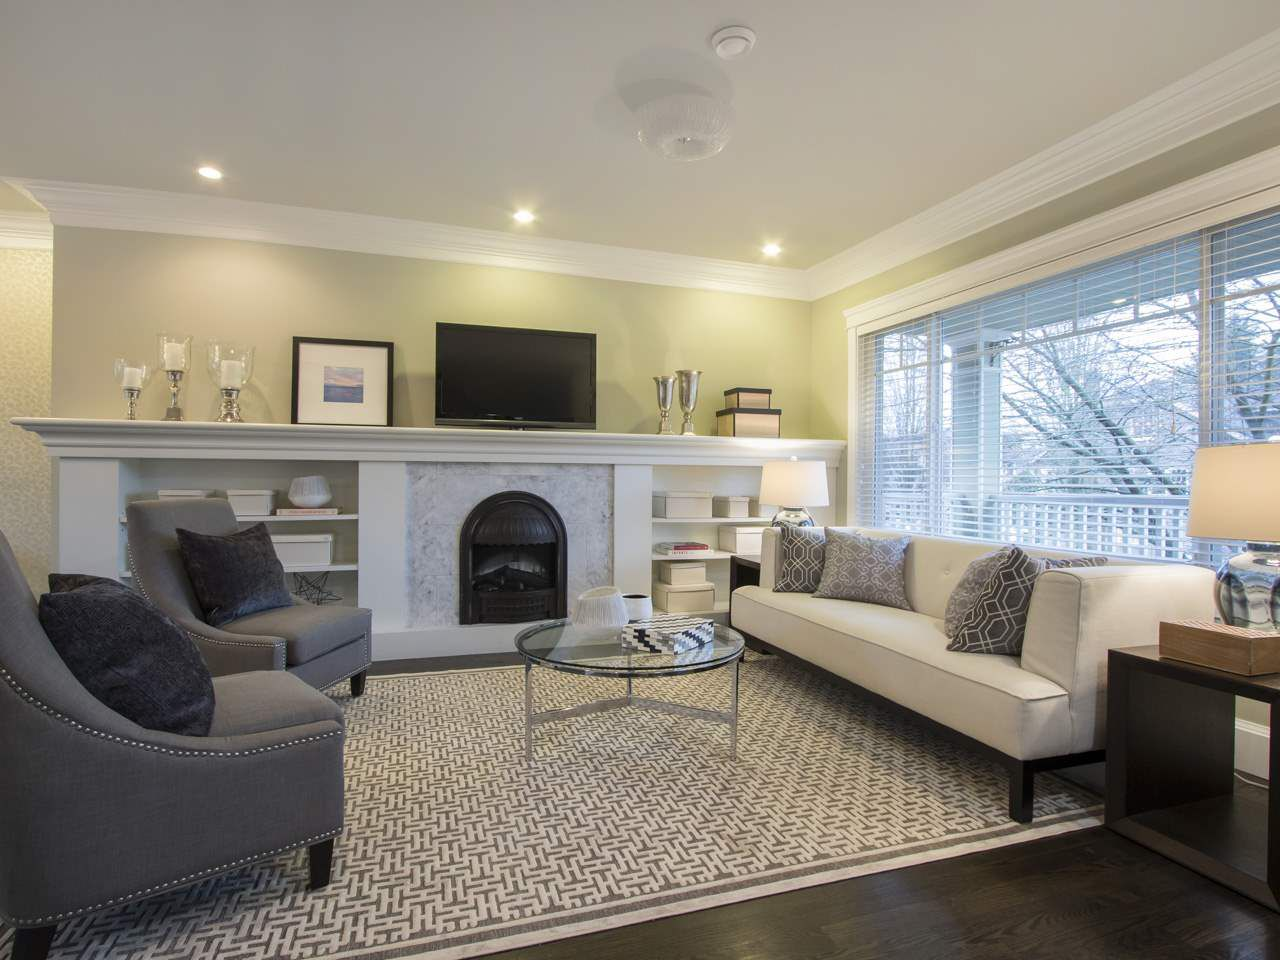 Main Photo: 2336 WOODLAND Drive in Vancouver: Grandview VE House for sale (Vancouver East)  : MLS®# R2222417